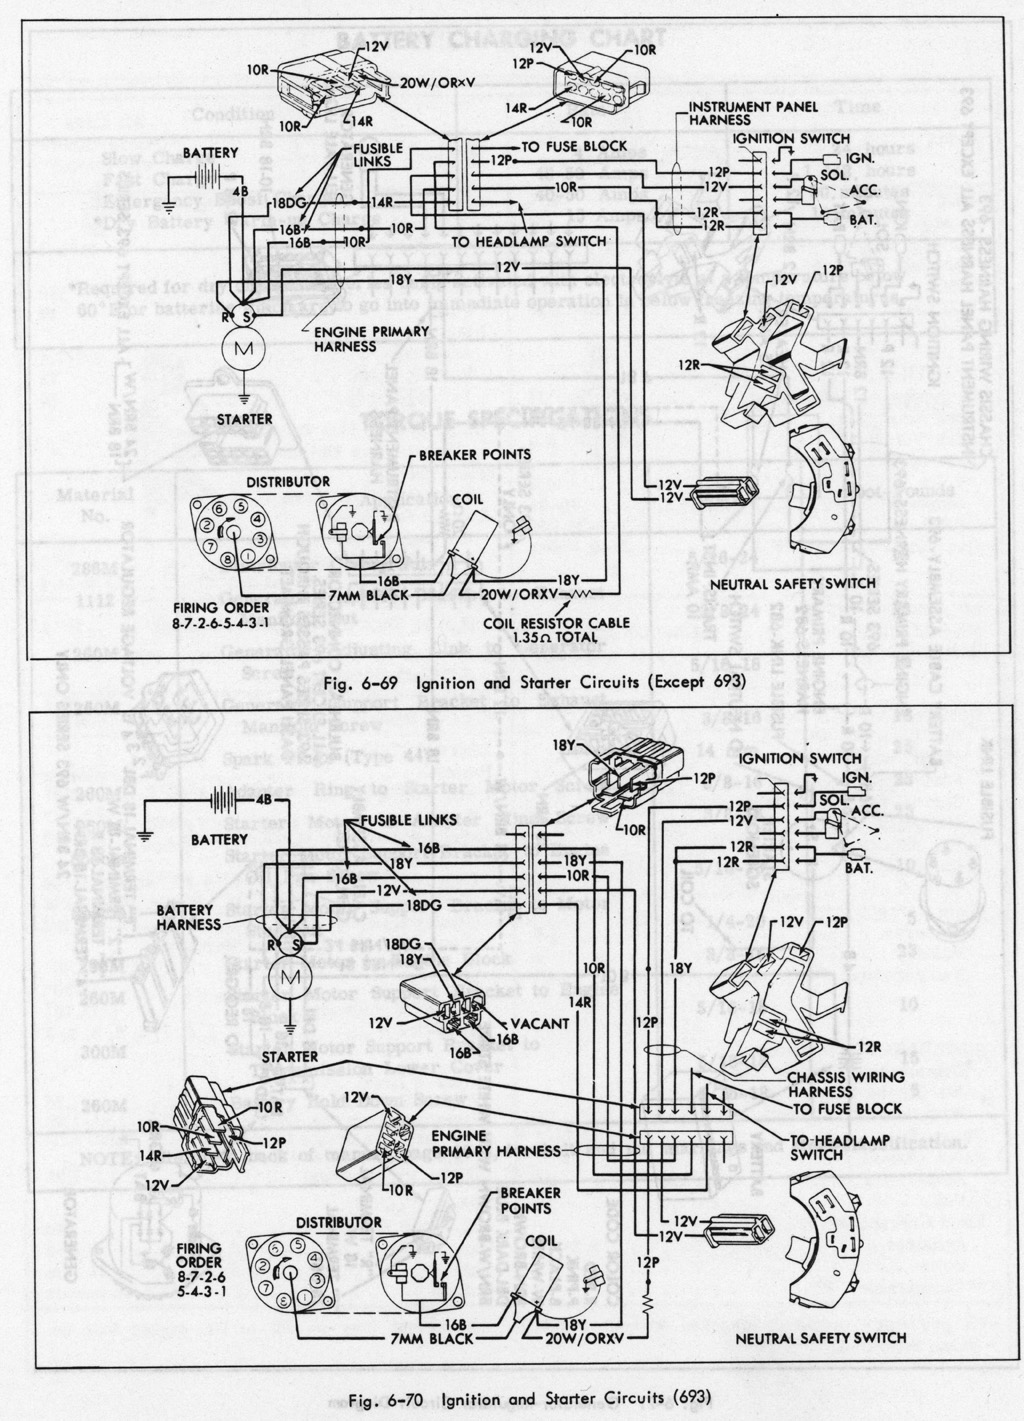 1973 Dodge Coronet Vacuum Diagram. Dodge. Auto Wiring Diagram